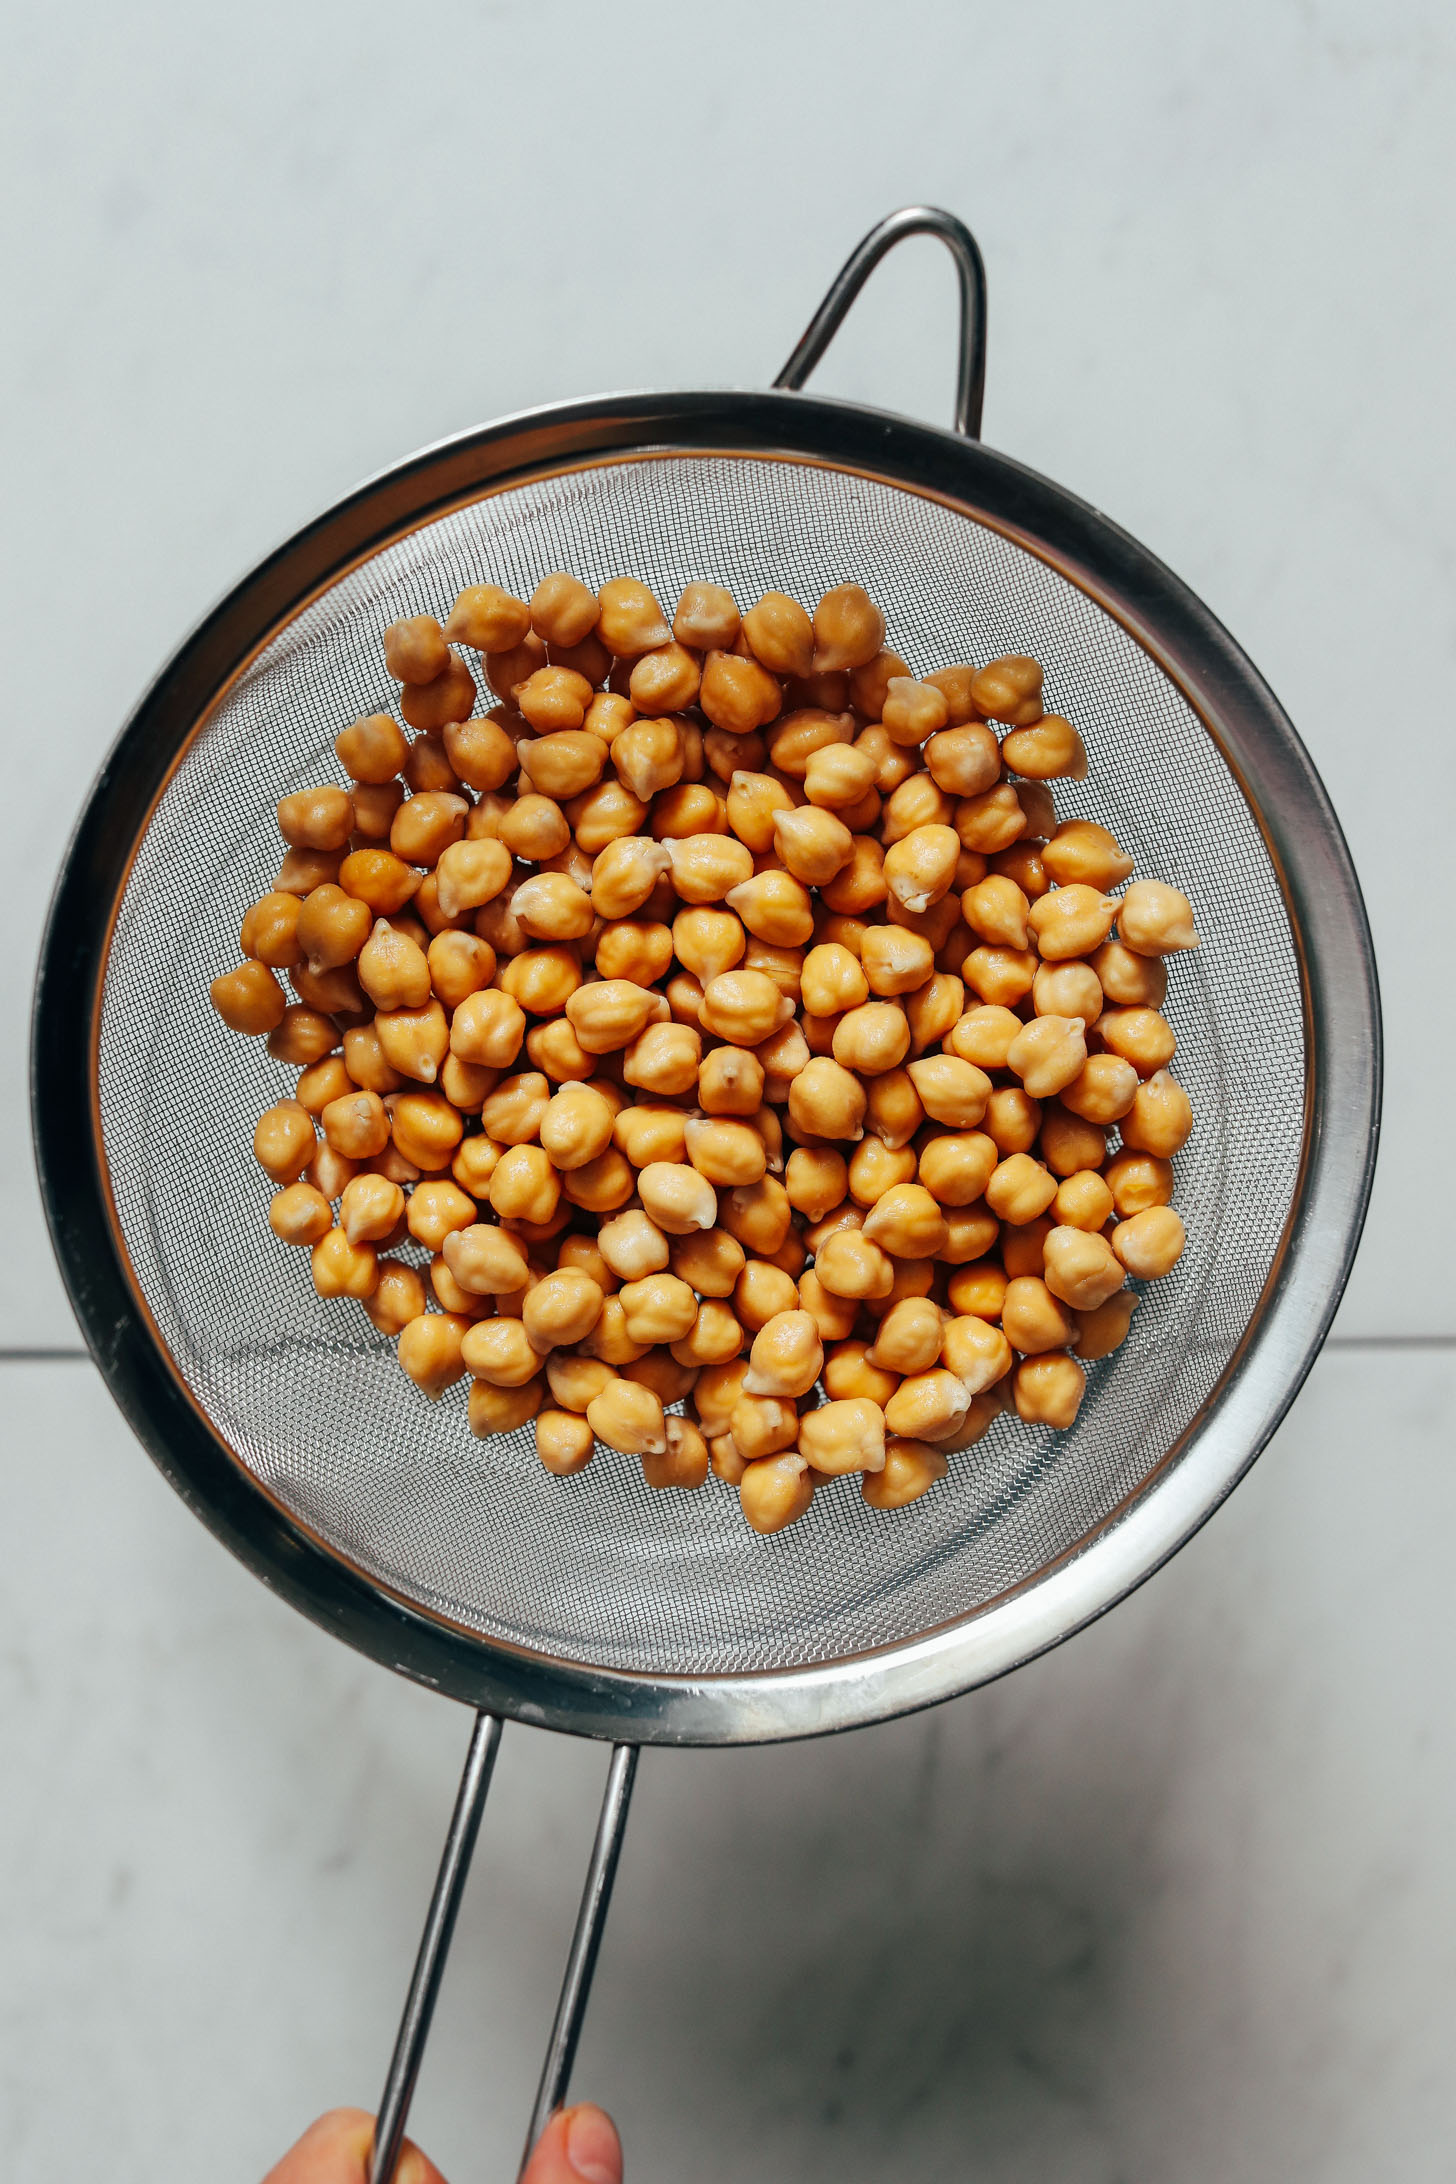 Soaked chickpeas in a fine mesh strainer